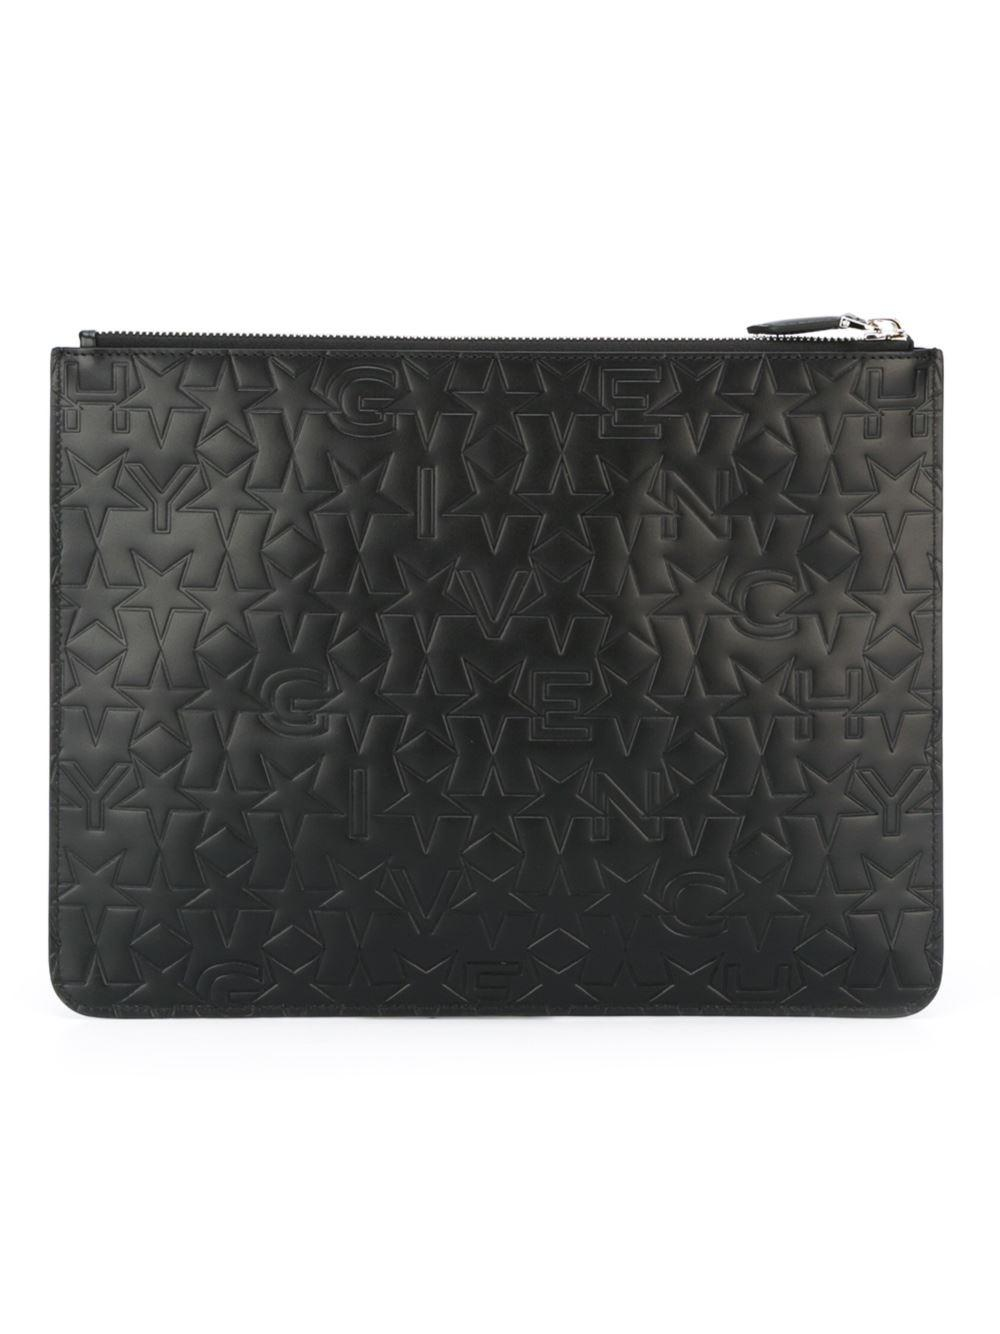 Creatures print zipped pouch - Black Givenchy Outlet Eastbay Sale Collections With Mastercard Cheap Price Pick A Best 100% Guaranteed Cheap Online NiJc2